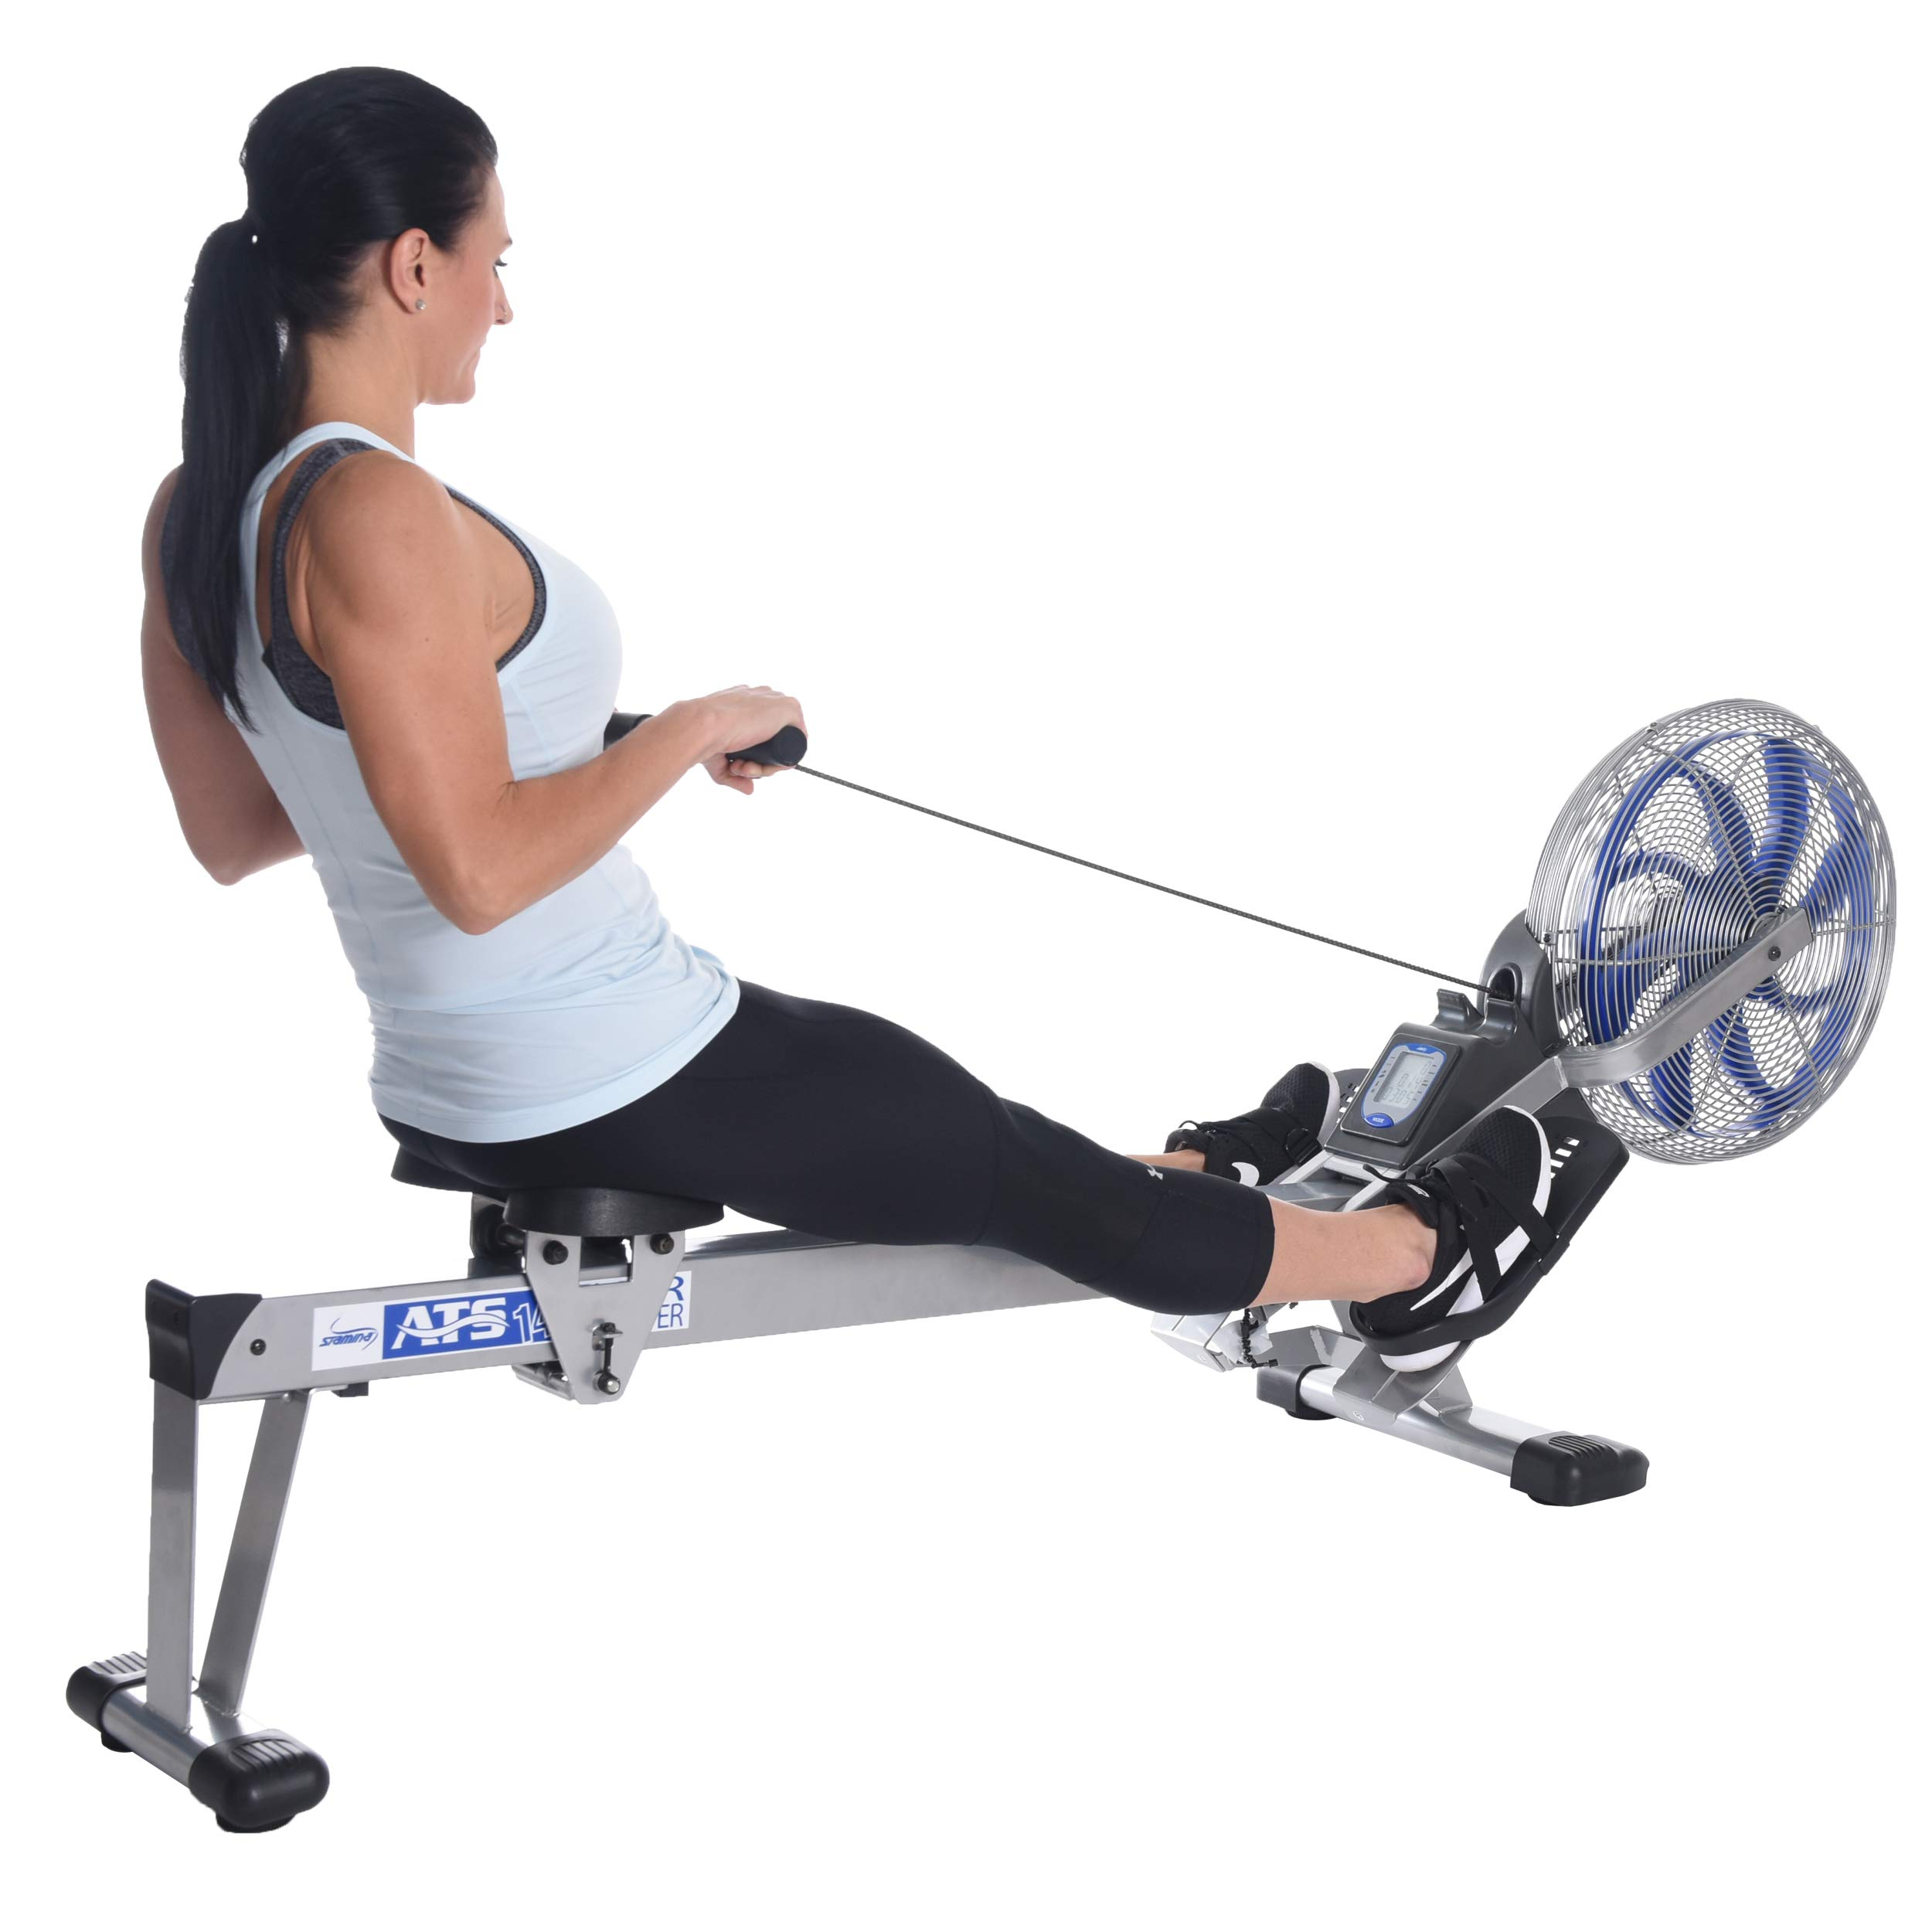 Stamina 35-1405 ATS Air Rower 1405 Rowing Machine, Air Resistance, LCD Fitness Monitor, Folding and Built-in Wheels, Chrome/Blue/Black by Stamina (Image #4)